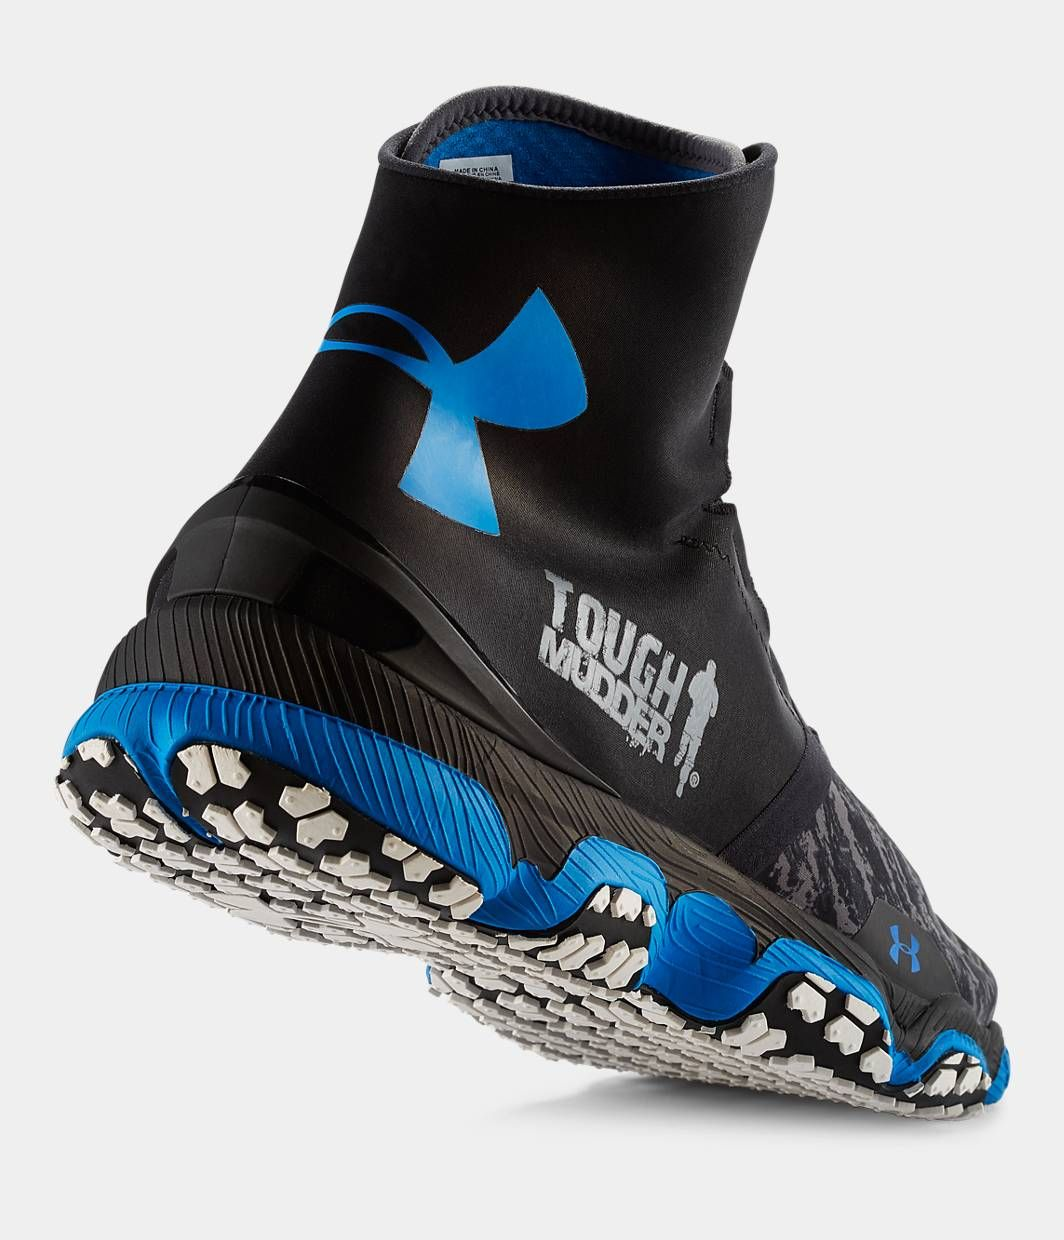 Equipement trail boutique running sports outdoor shop - Men S Ua Speedform Xc Mid Trail Running Shoes Under Armour Us